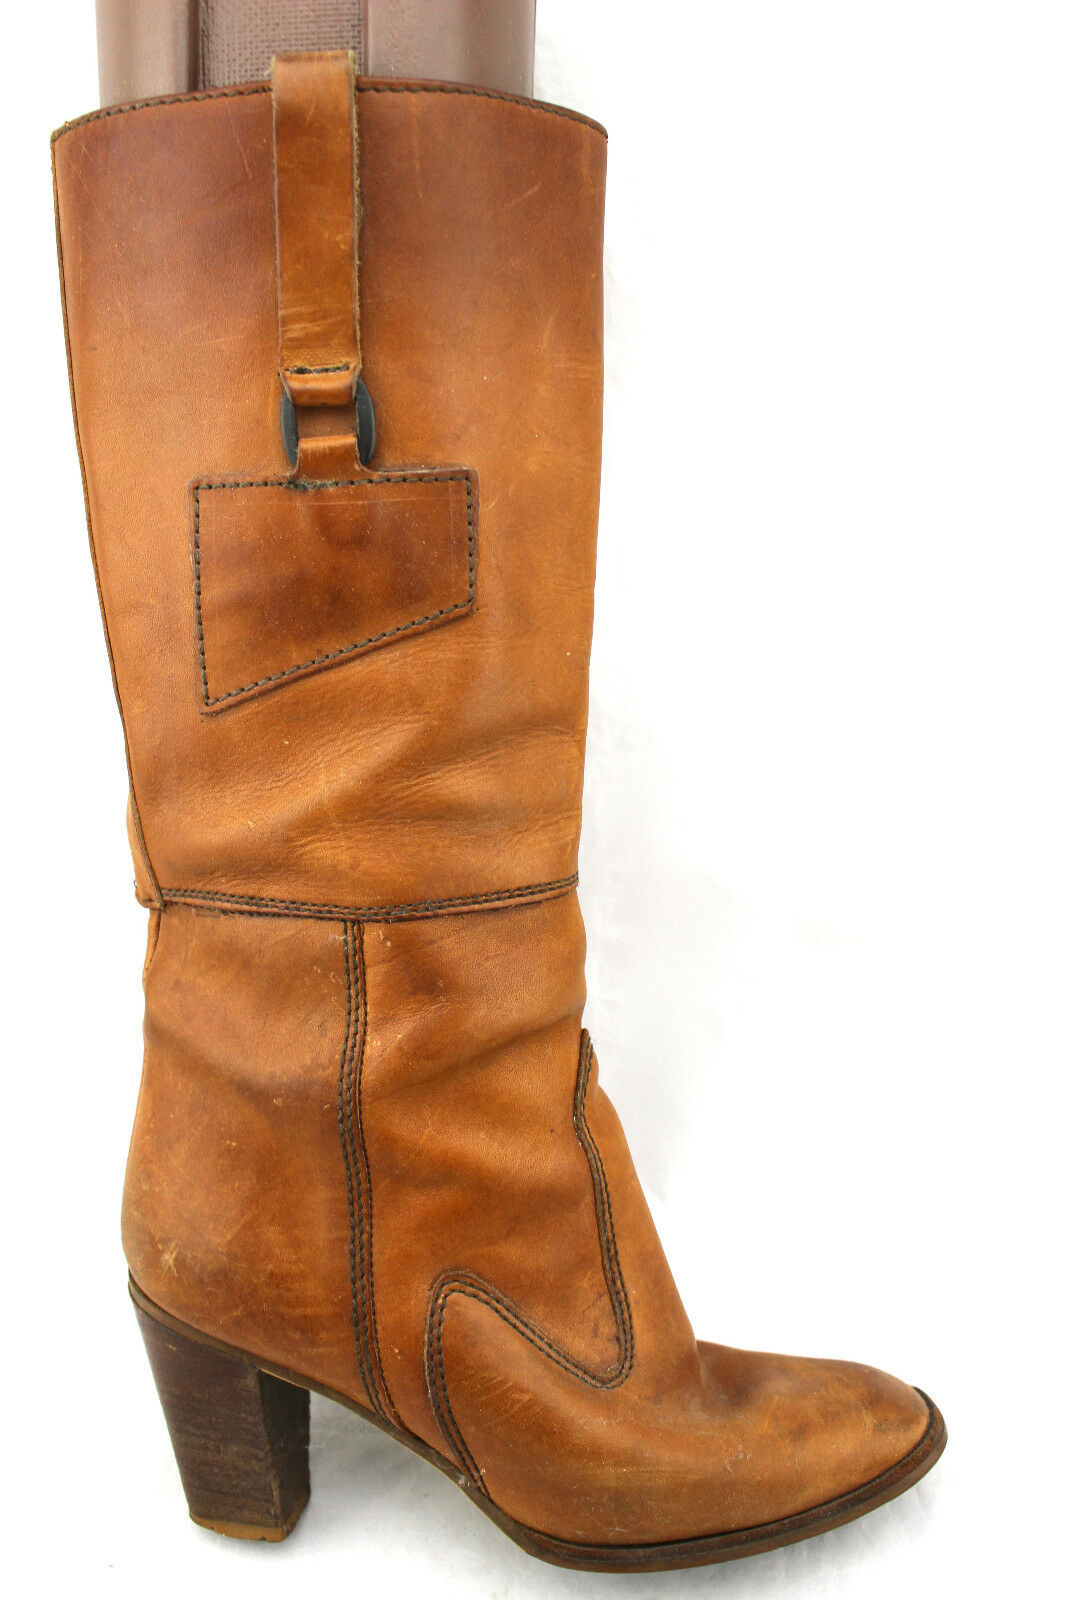 VINDAGE Saddle Tan Tan Tan Camel läder Knee High Harness Campus stövlar Uruguay 7  till salu